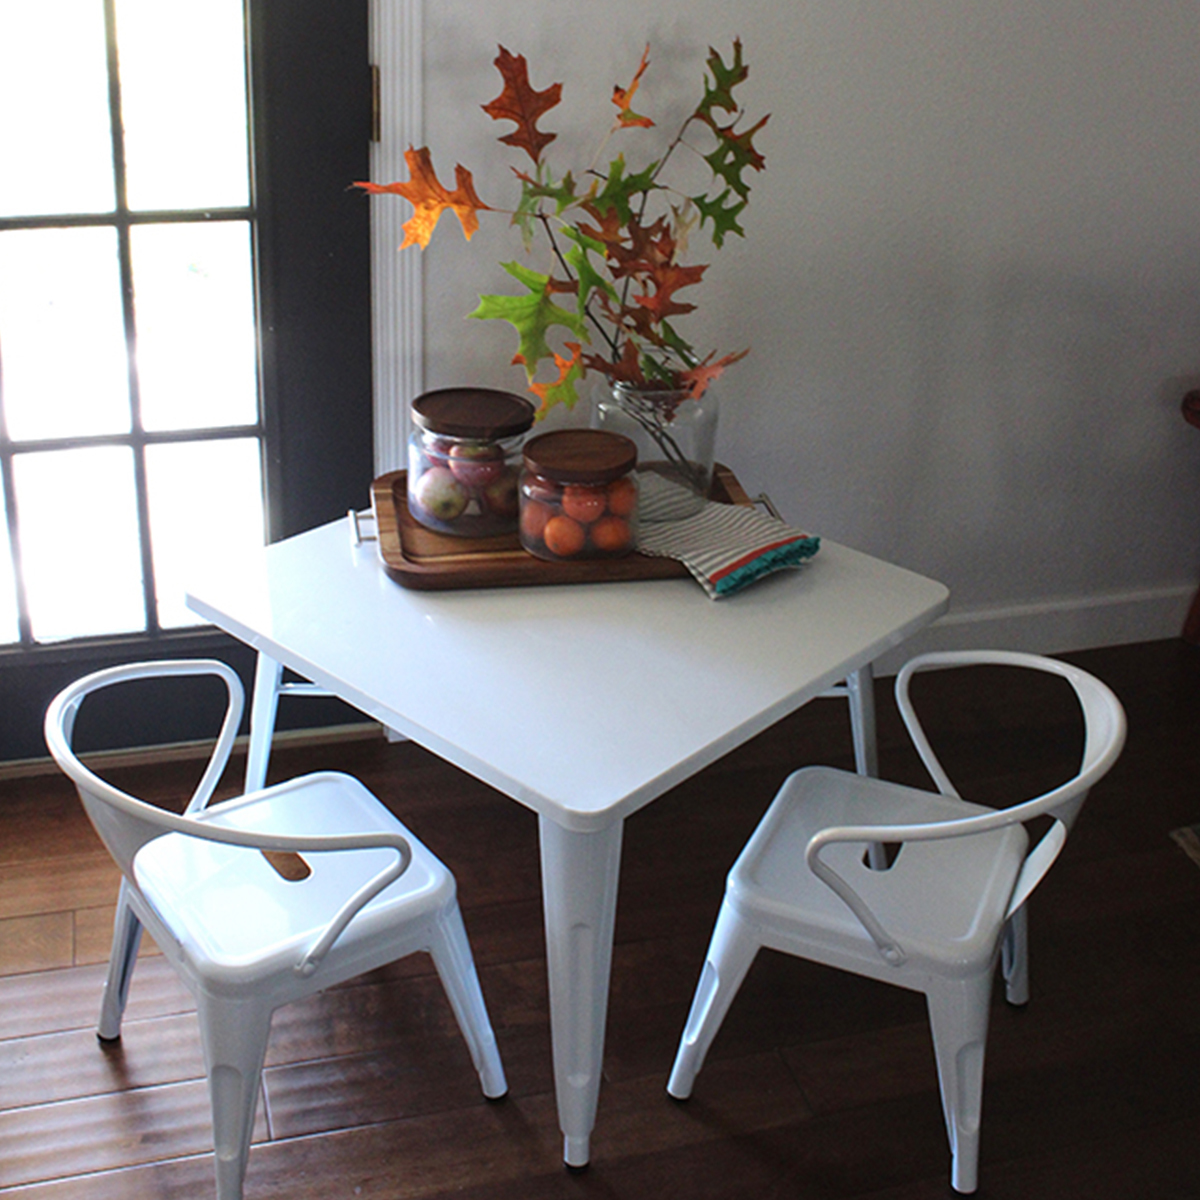 Better Homes & Gardens childrens table and chairs photo